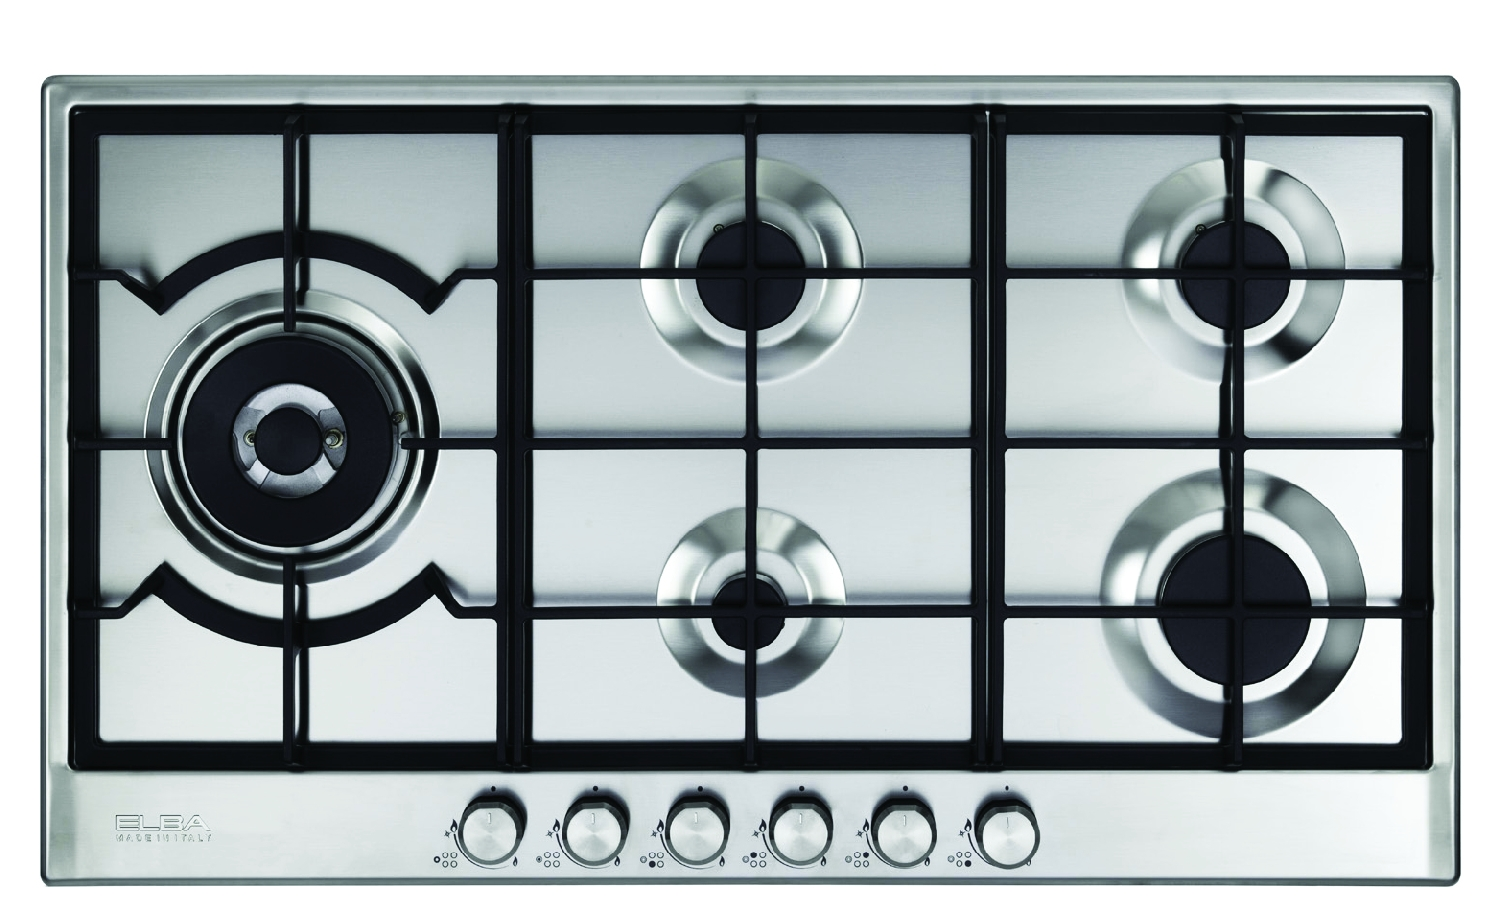 elio-new-design-95-565-5-gas-burners-cooker-top